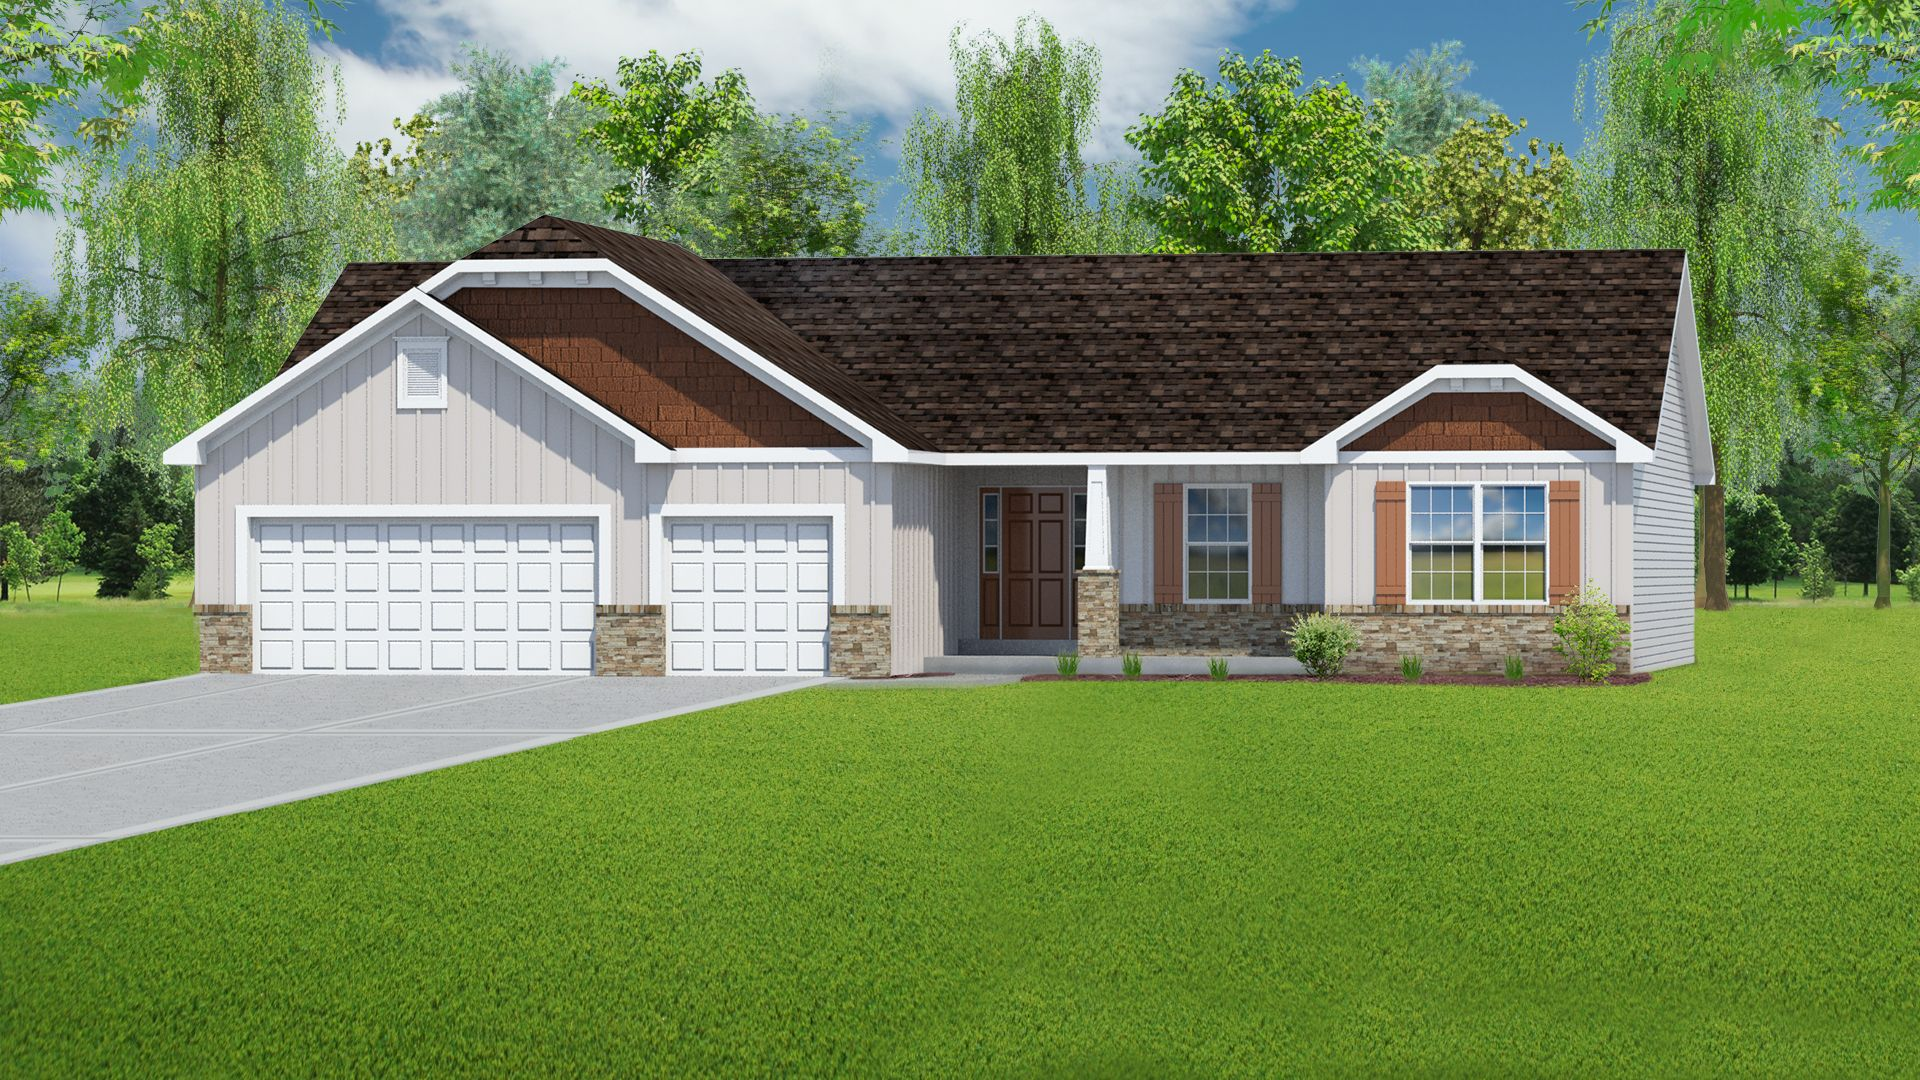 Exterior featured in The Willow - 3 Car Garage By T.R. Hughes Homes in St. Louis, MO